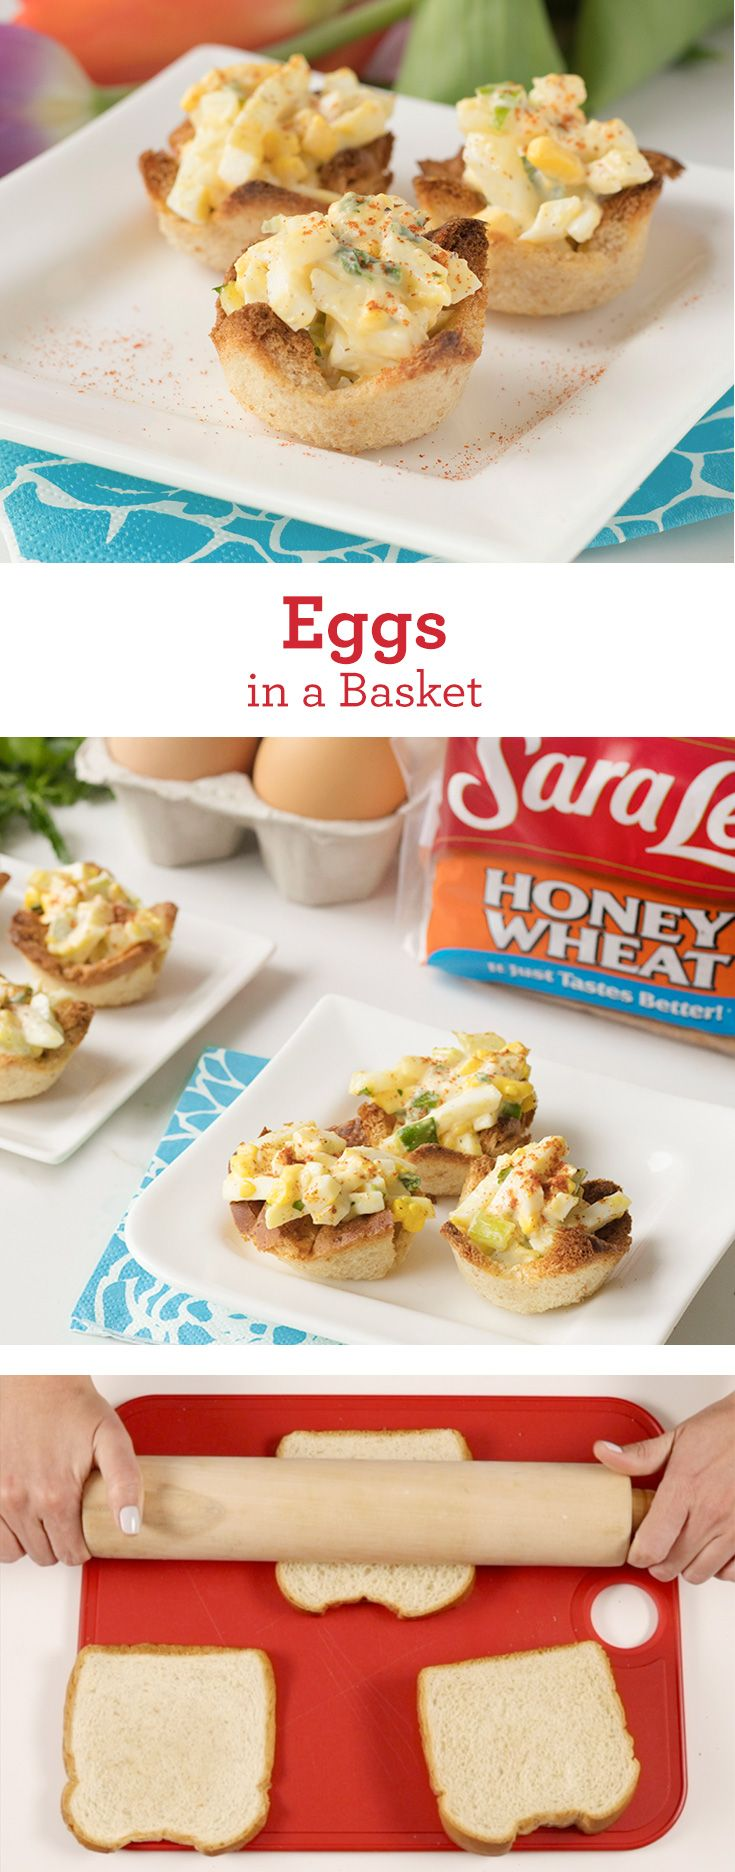 Eggs in a Basket | Recipe | Eggs in a basket, Honey wheat ...